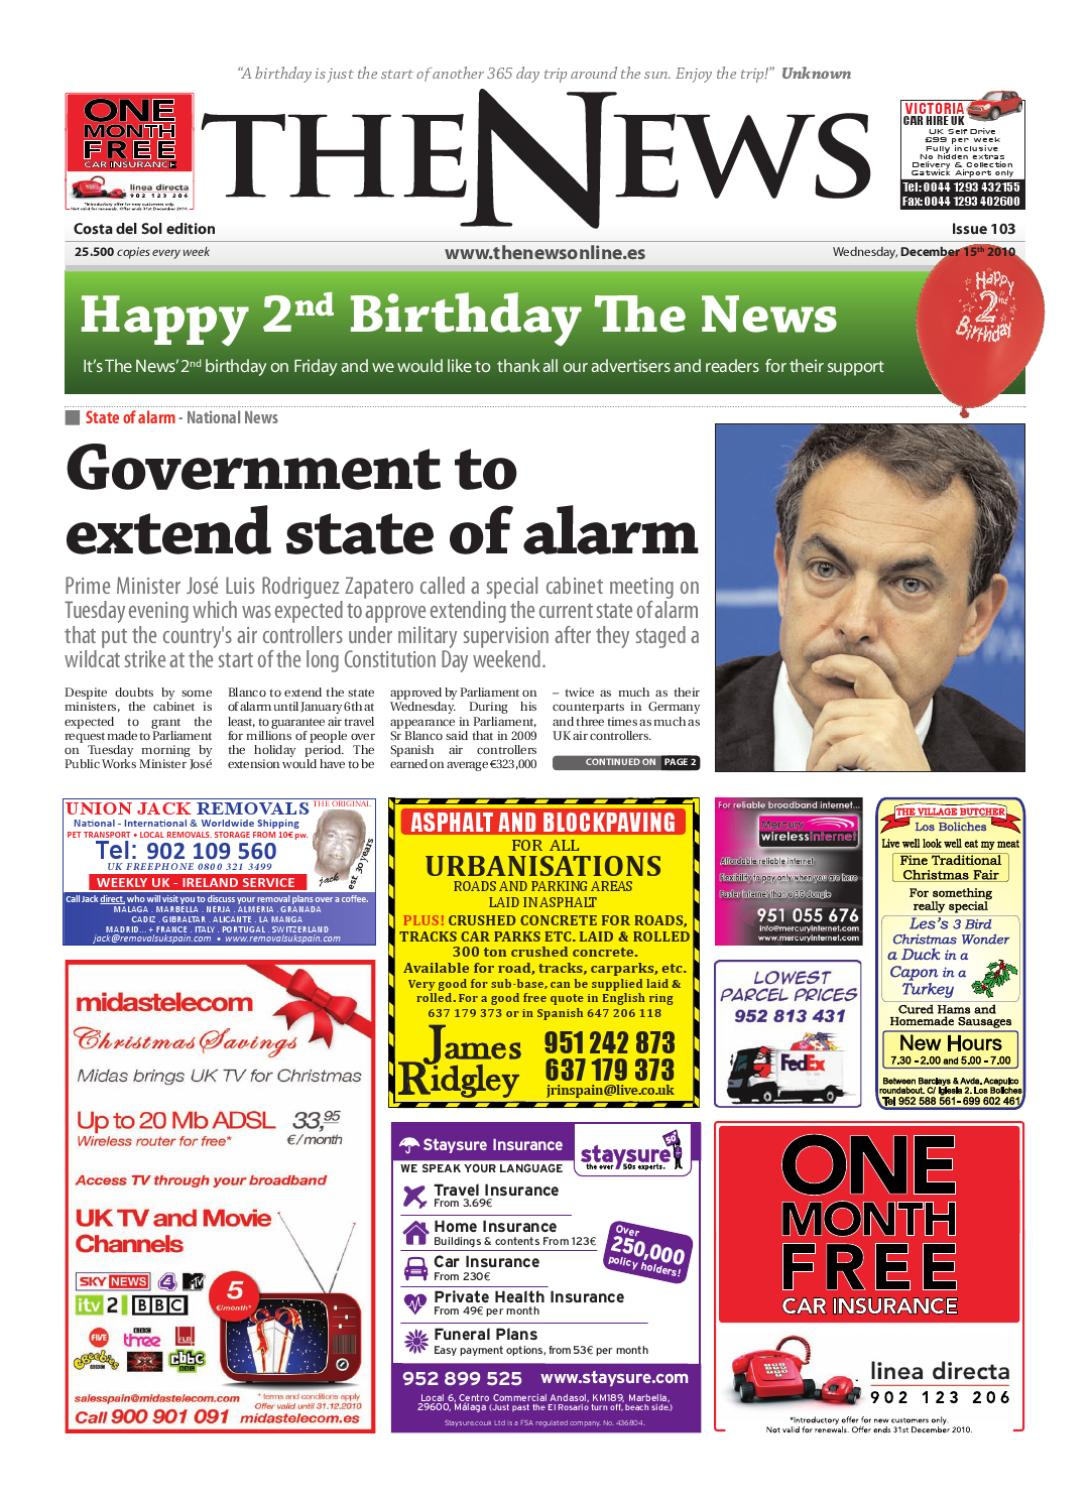 2570f47e34 The News Newspaper - Issue 103 - (Date 15th December 2010) by The ...